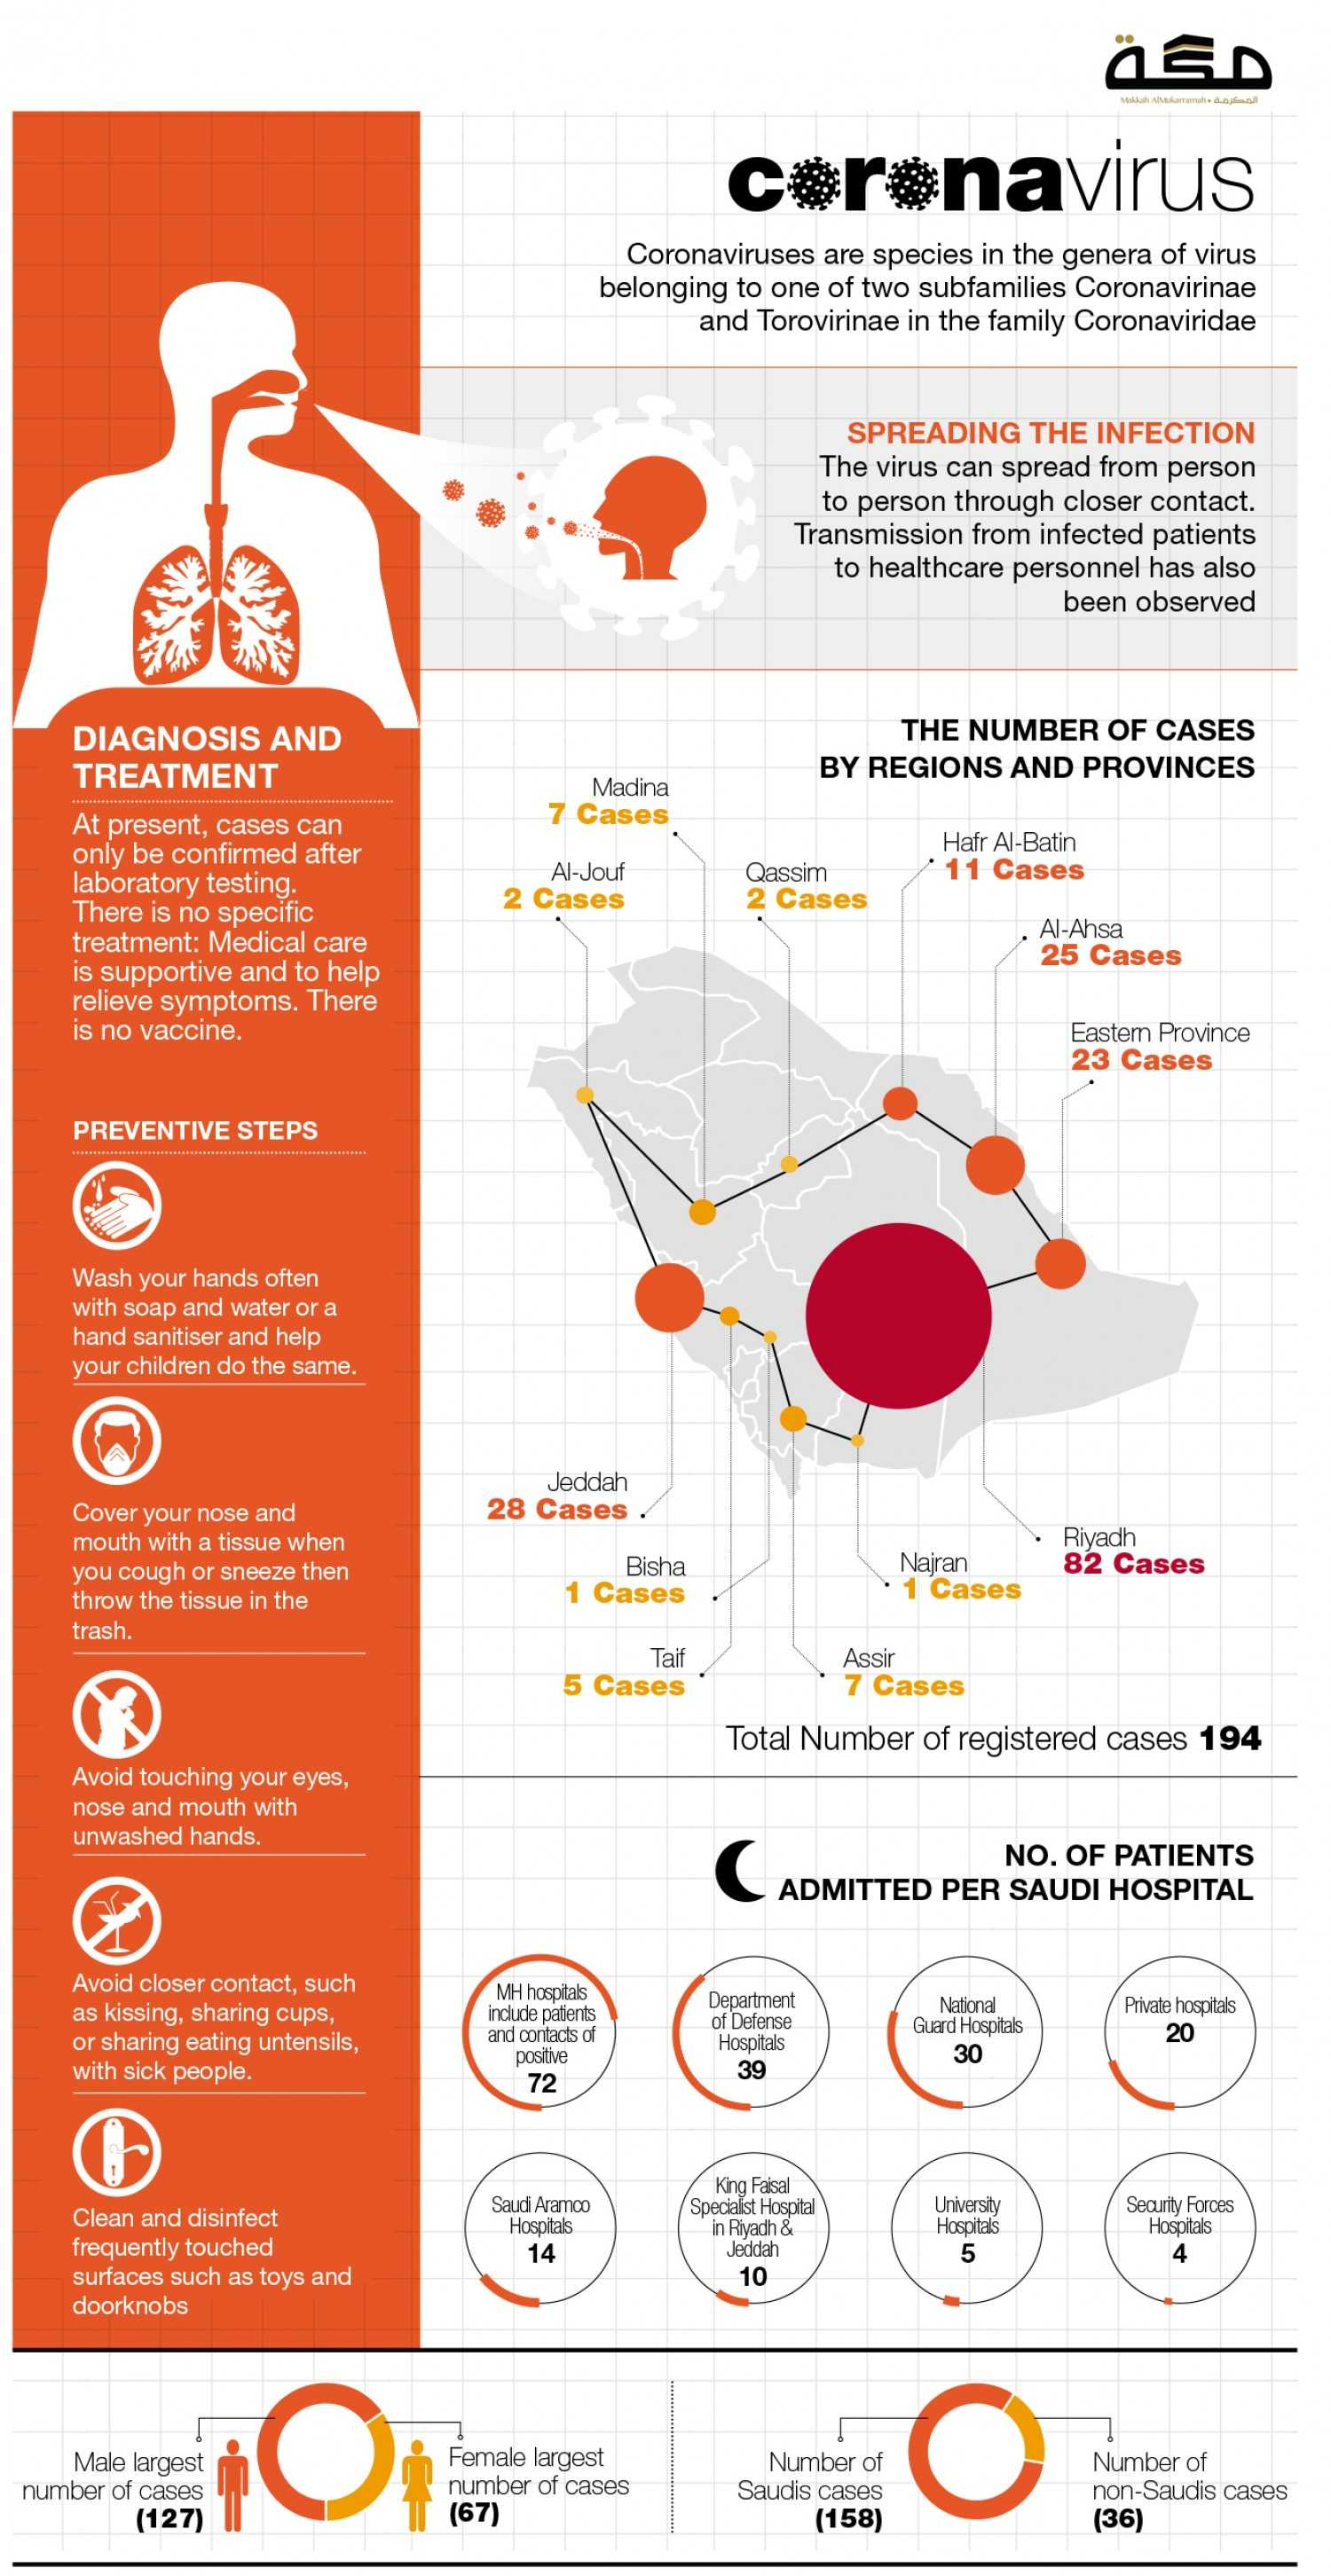 CoronaVirus Infographic for the Daily Makkah Newspaper, Saudi Arabia